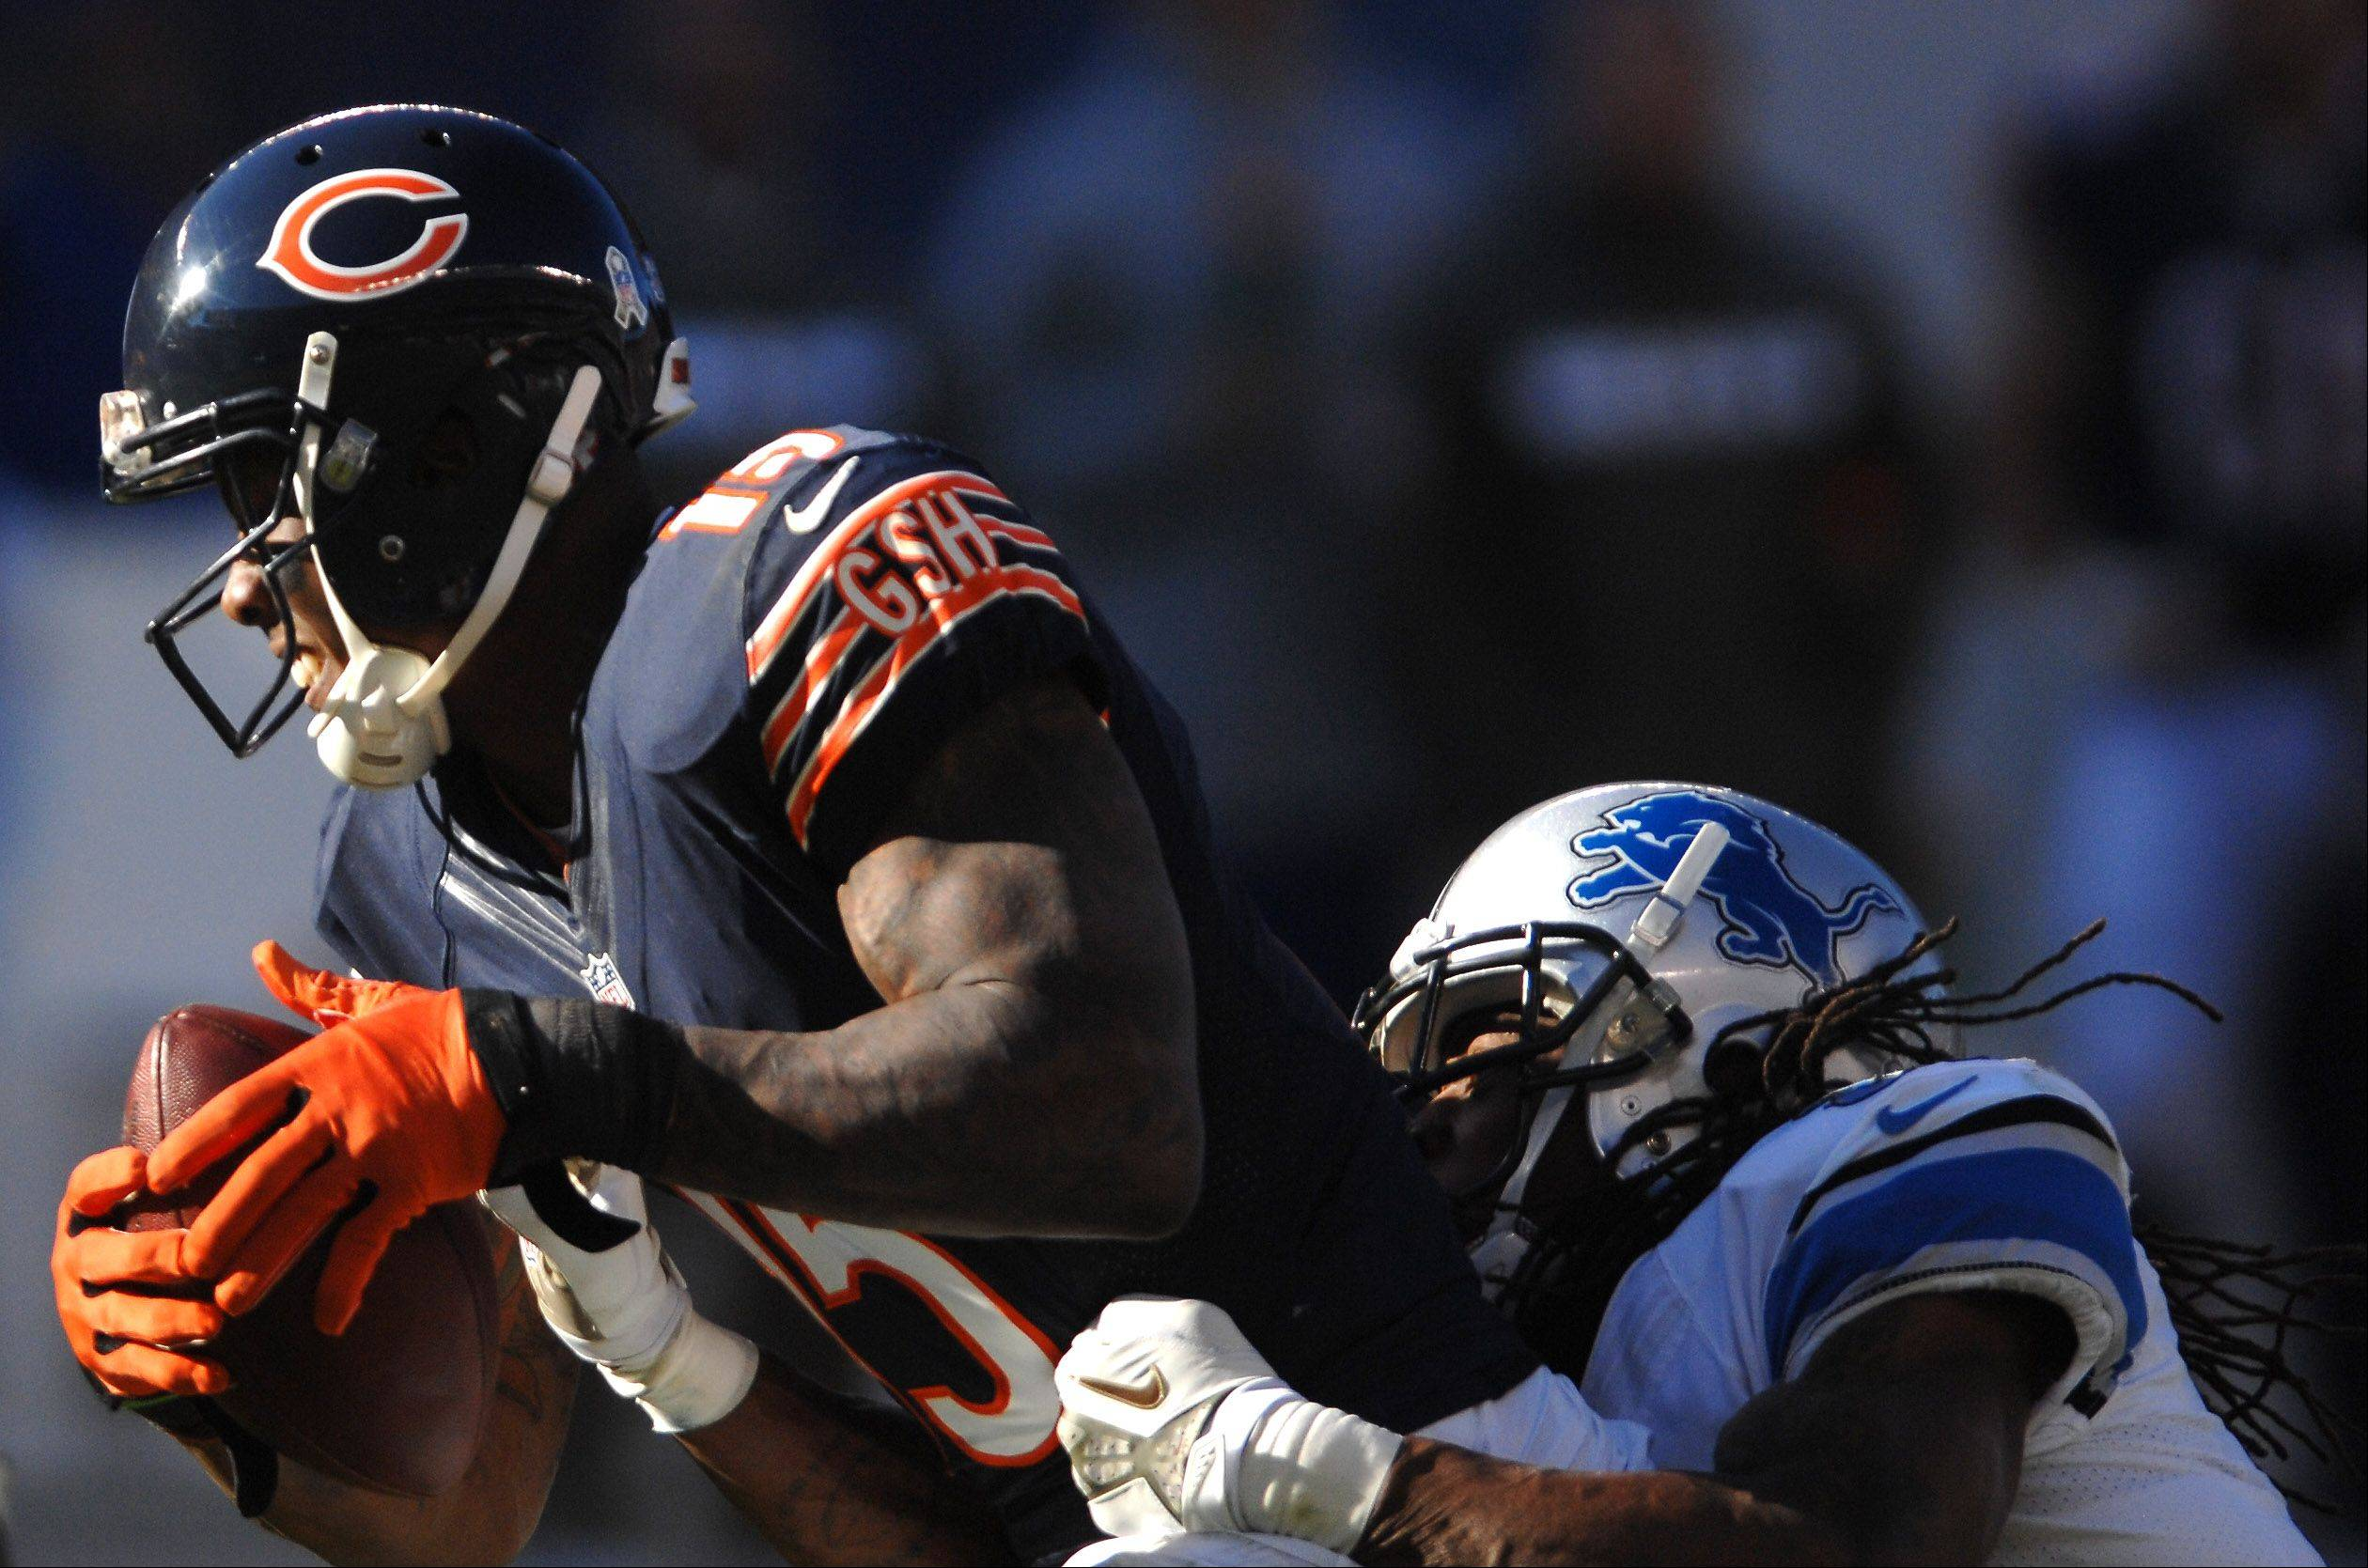 Chicago Bears wide receiver Brandon Marshall (15) drags Detroit Lions cornerback Rashean Mathis (31) for some extra yardage during the third quarter of Sunday's game in Chicago.